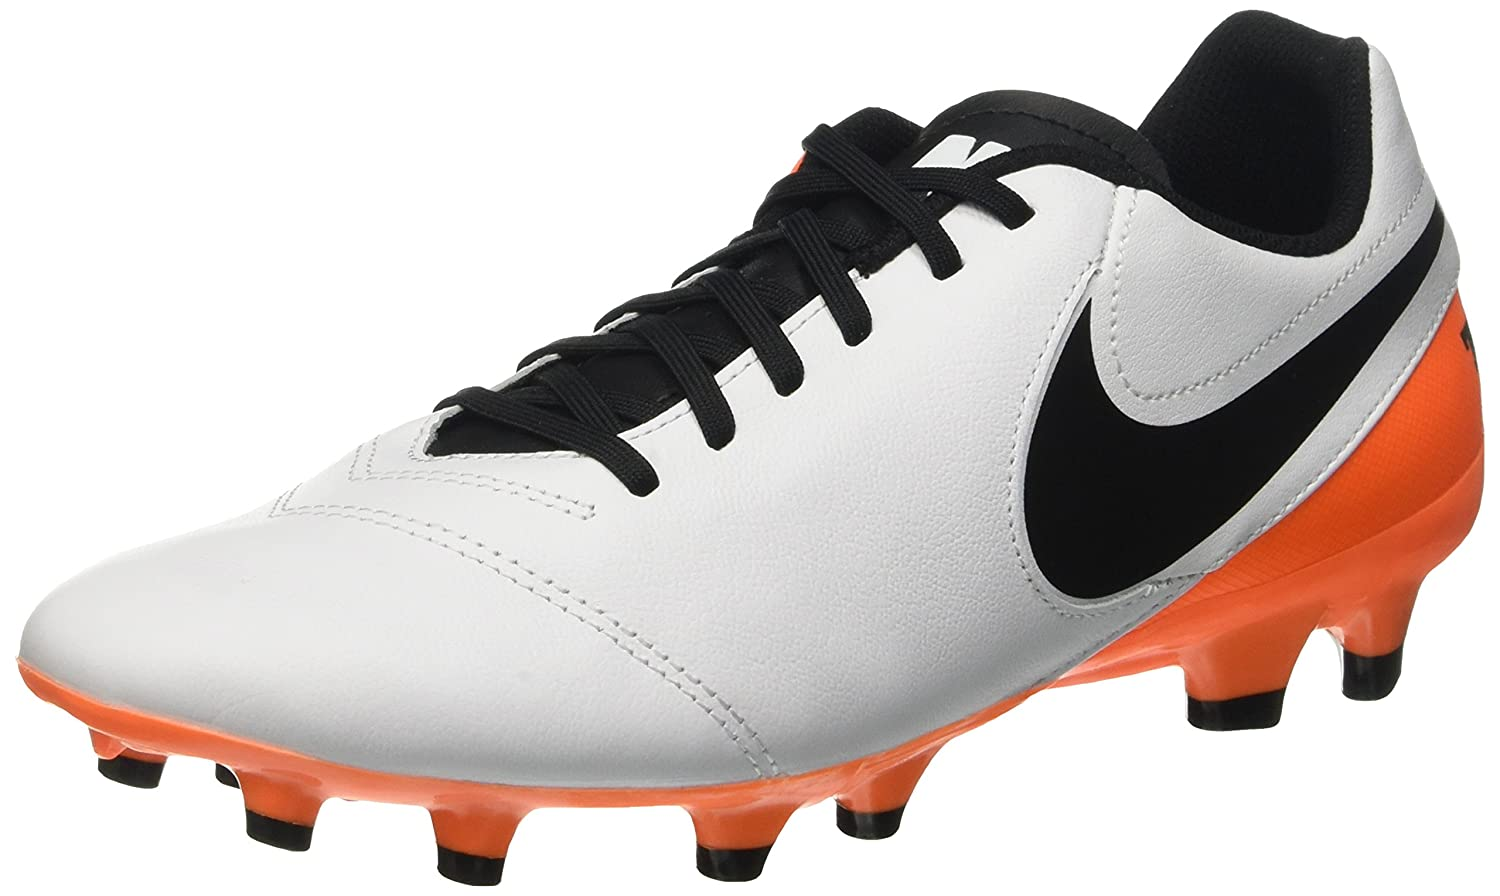 purchase cheap c4d0a c498c Nike Tiempo Genio II Leather FG Soccer Cleat (White, Total ...